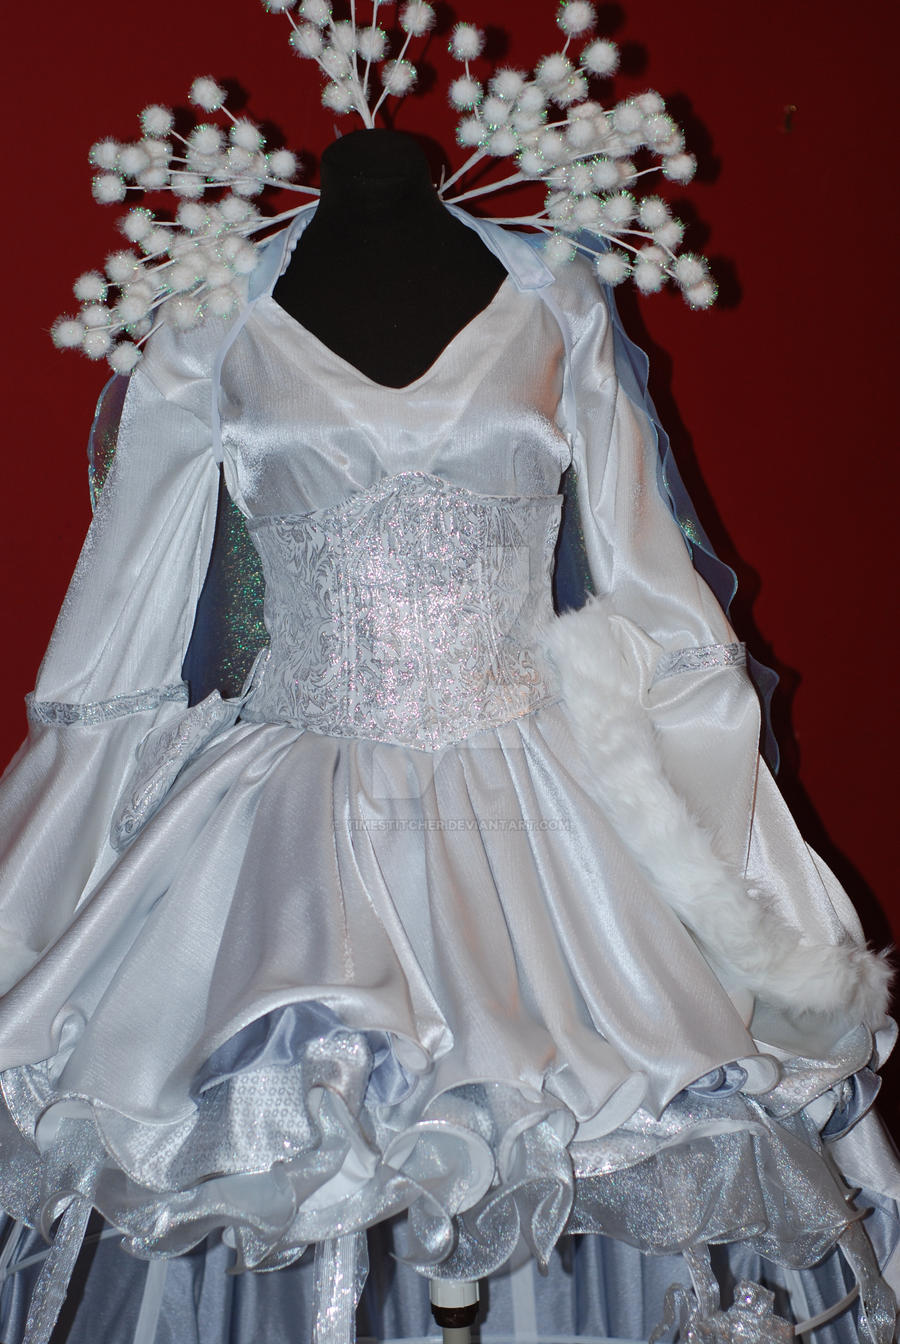 Snow Queen Costume Closeup by Timestitcher Snow Queen Costume Closeup by Timestitcher & Snow Queen Costume Closeup by Timestitcher on DeviantArt